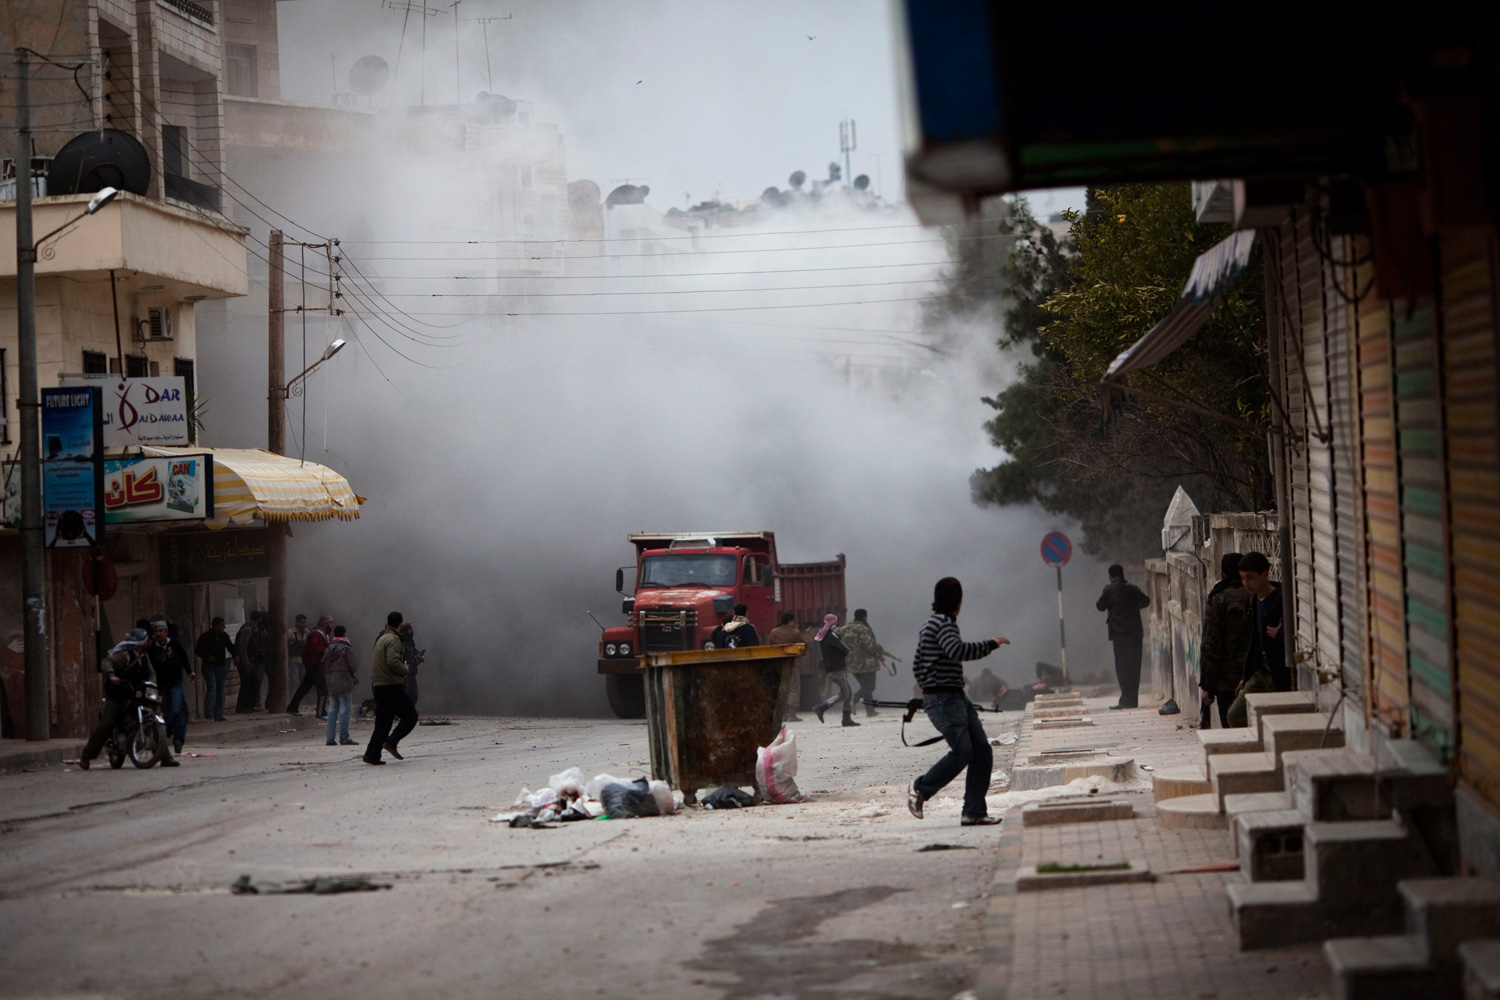 March 11, 2012. Free Syrian Army fighters are seen amid smoke from tank shelling during a day of fierce fighting with the government forces in Idlib, north Syria.